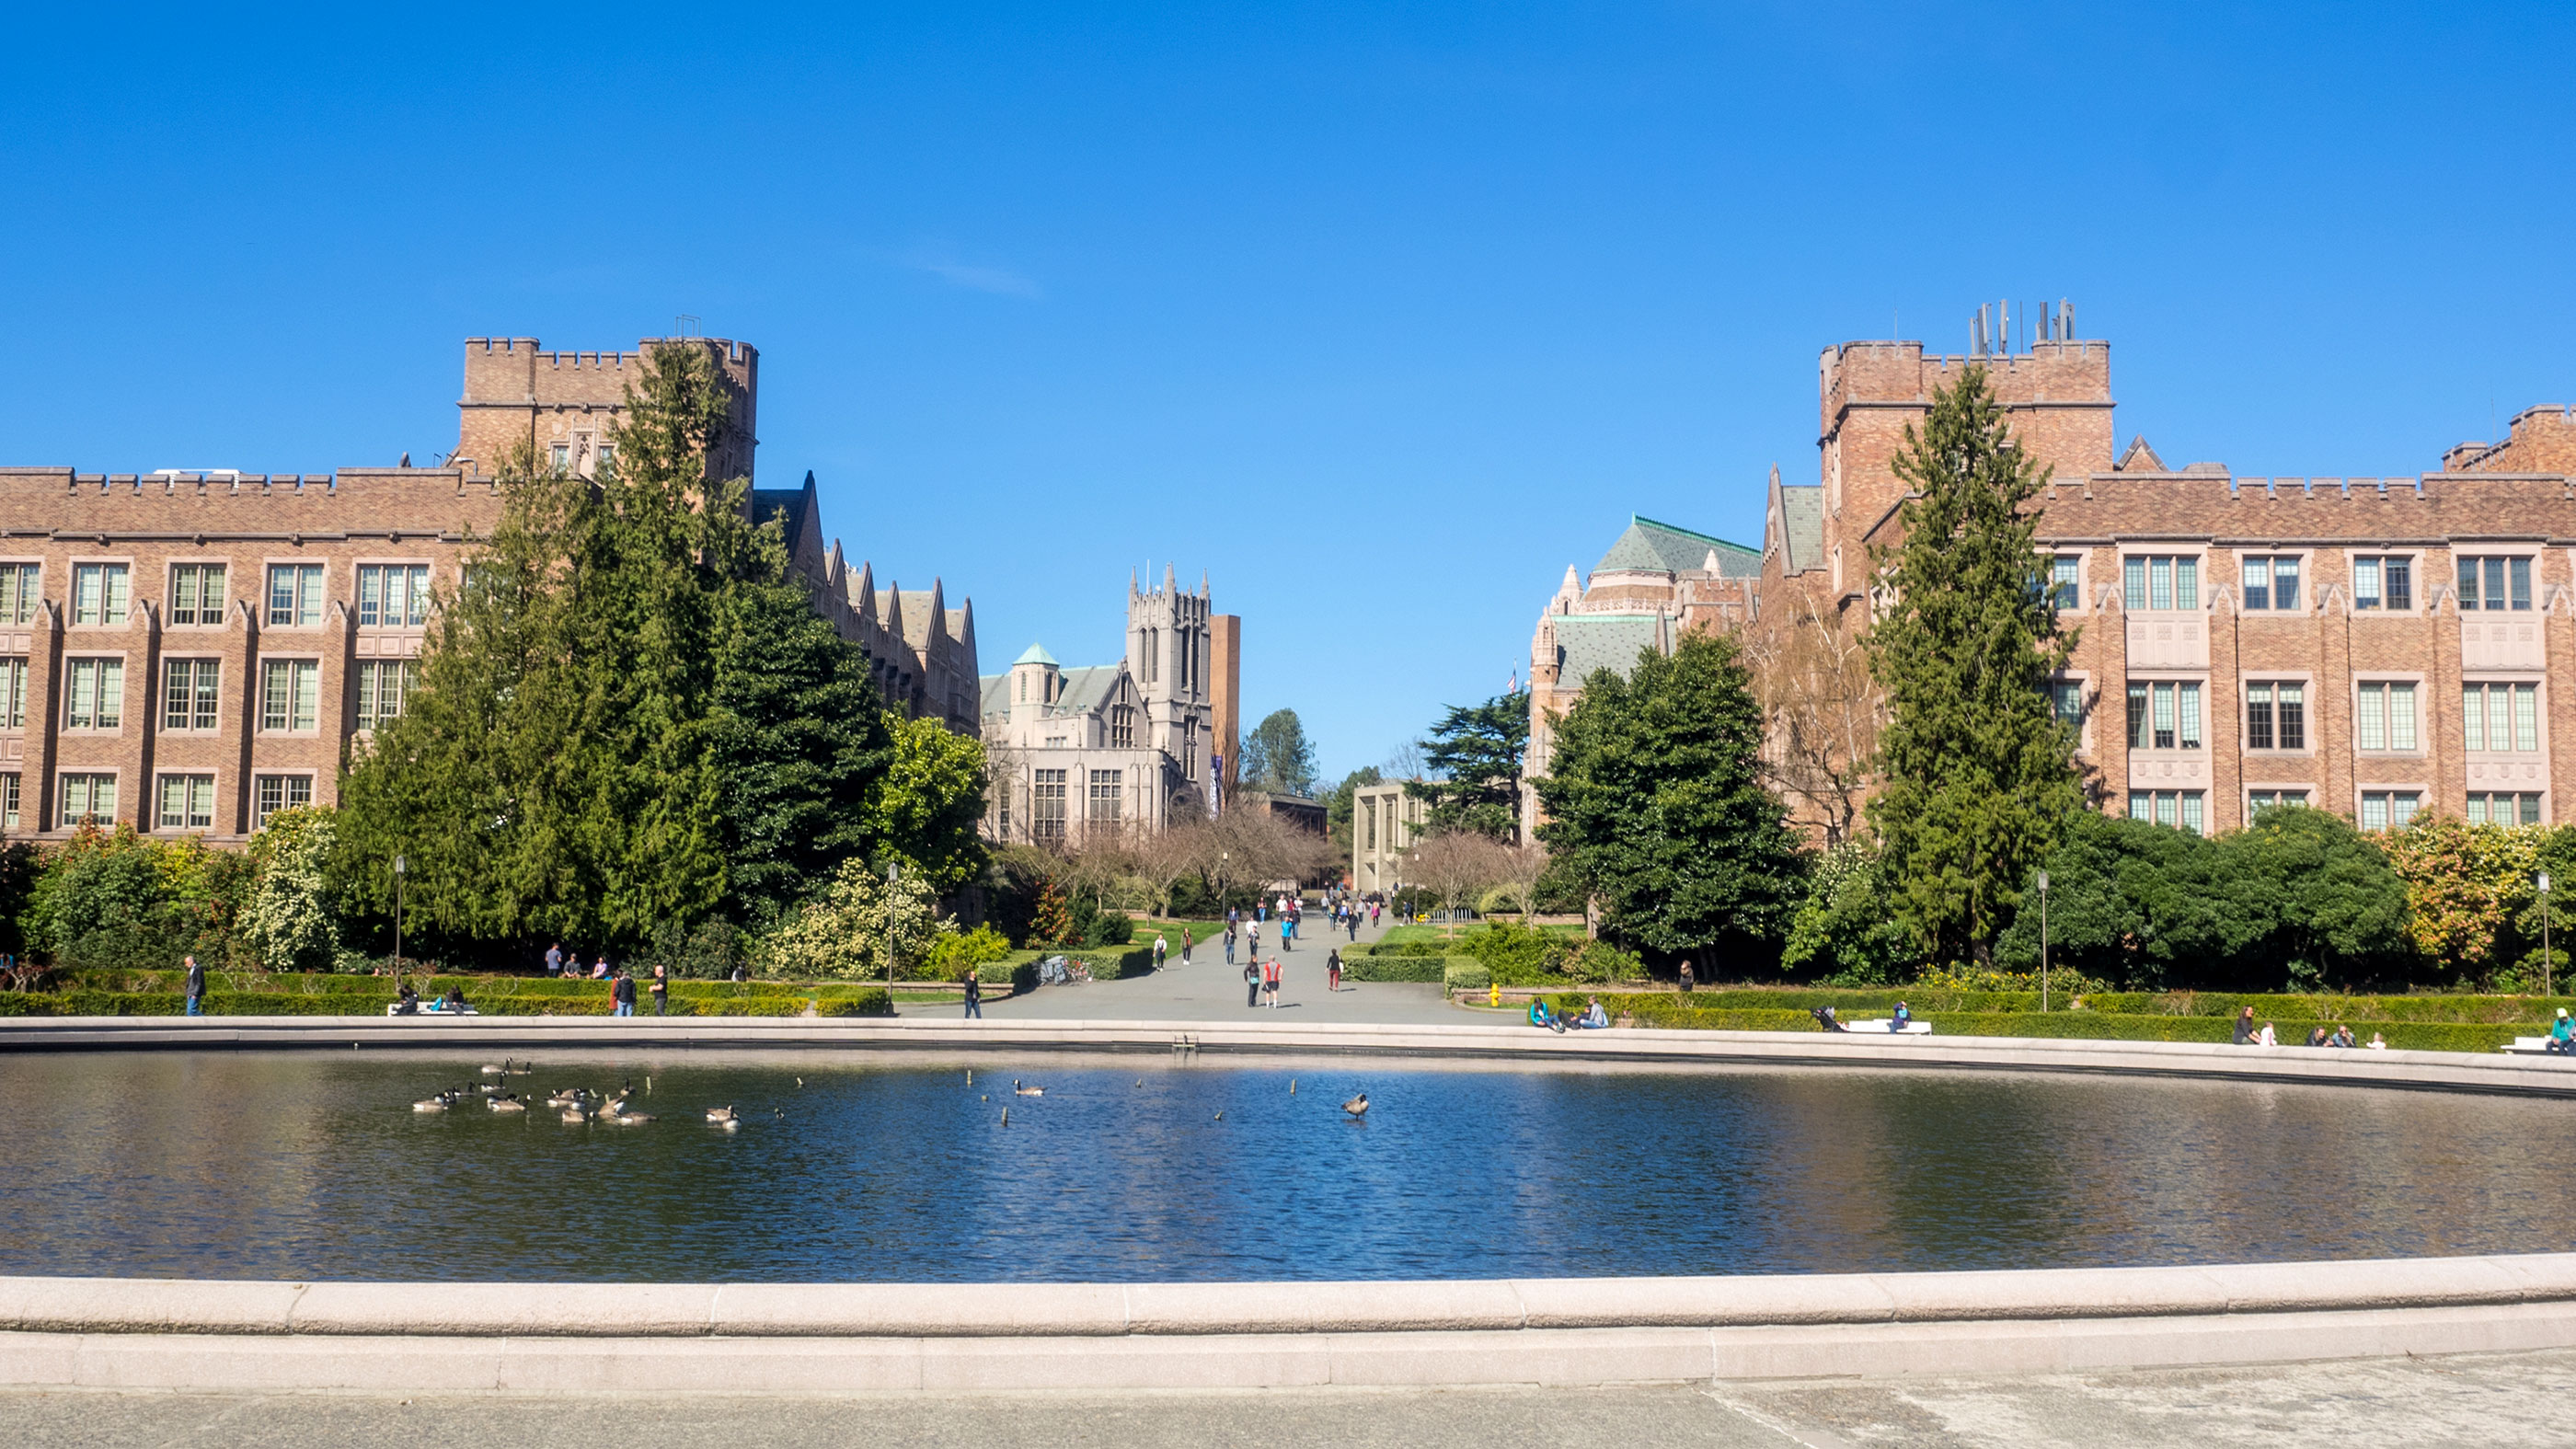 University of Washington campus in Seattle, Washington.